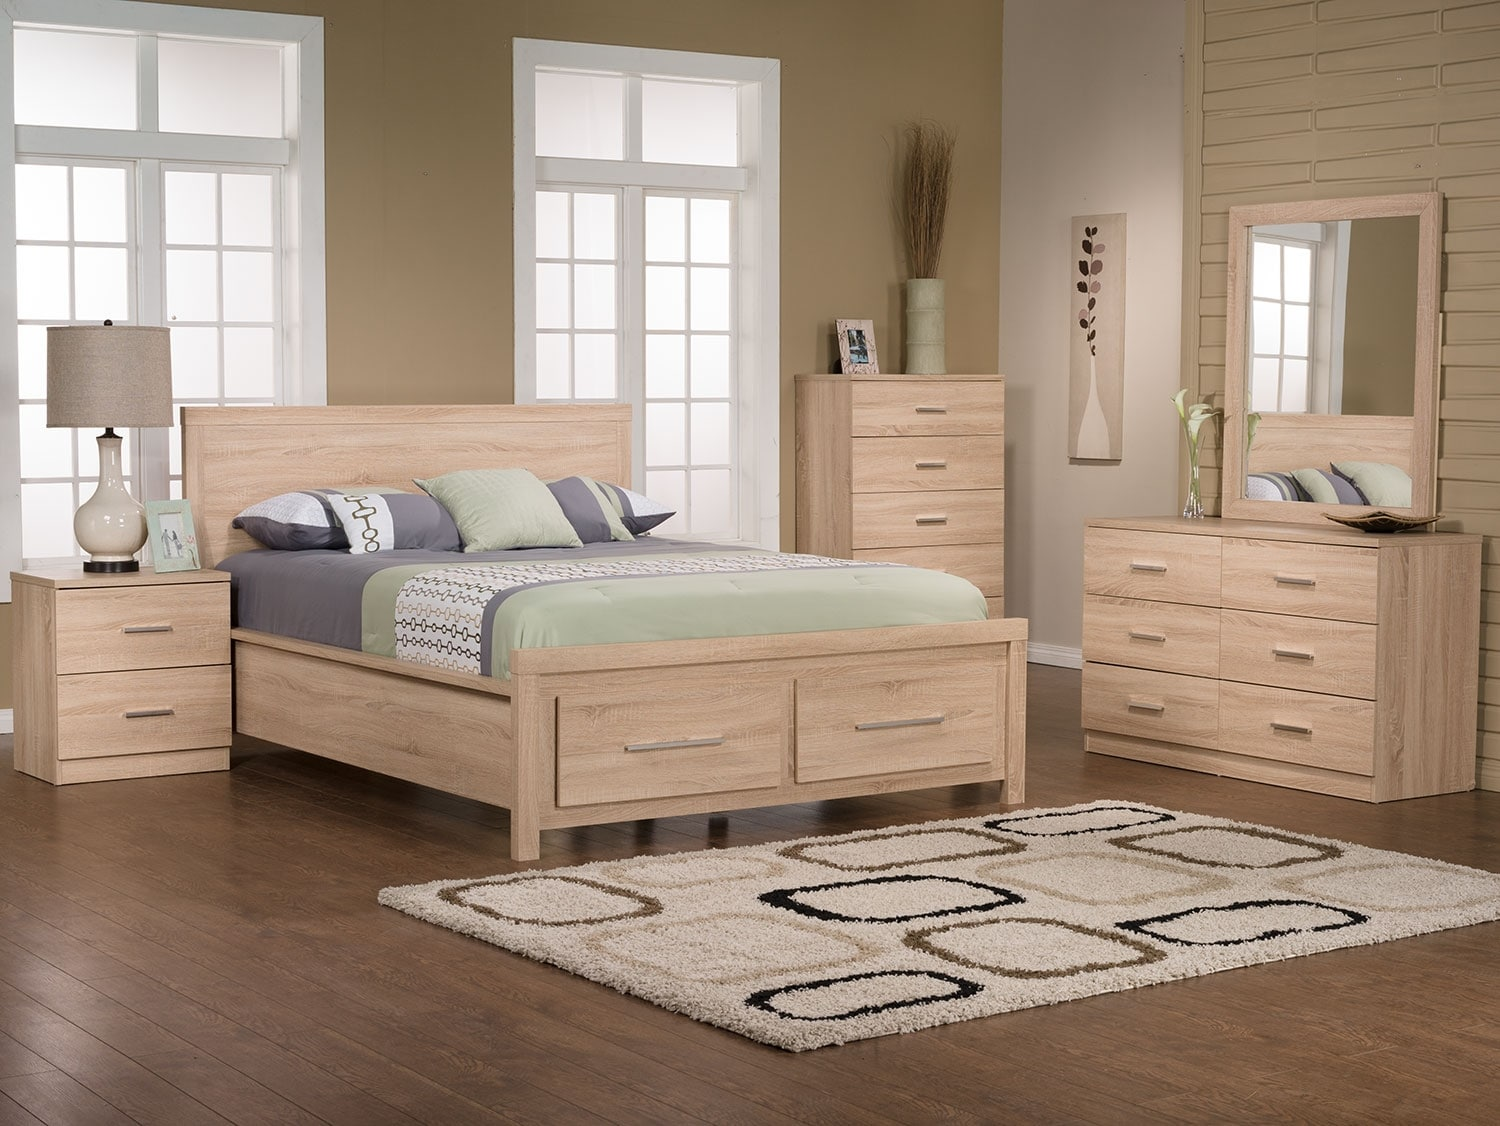 Bedroom Furniture - Sierra Queen 6pc Bedroom